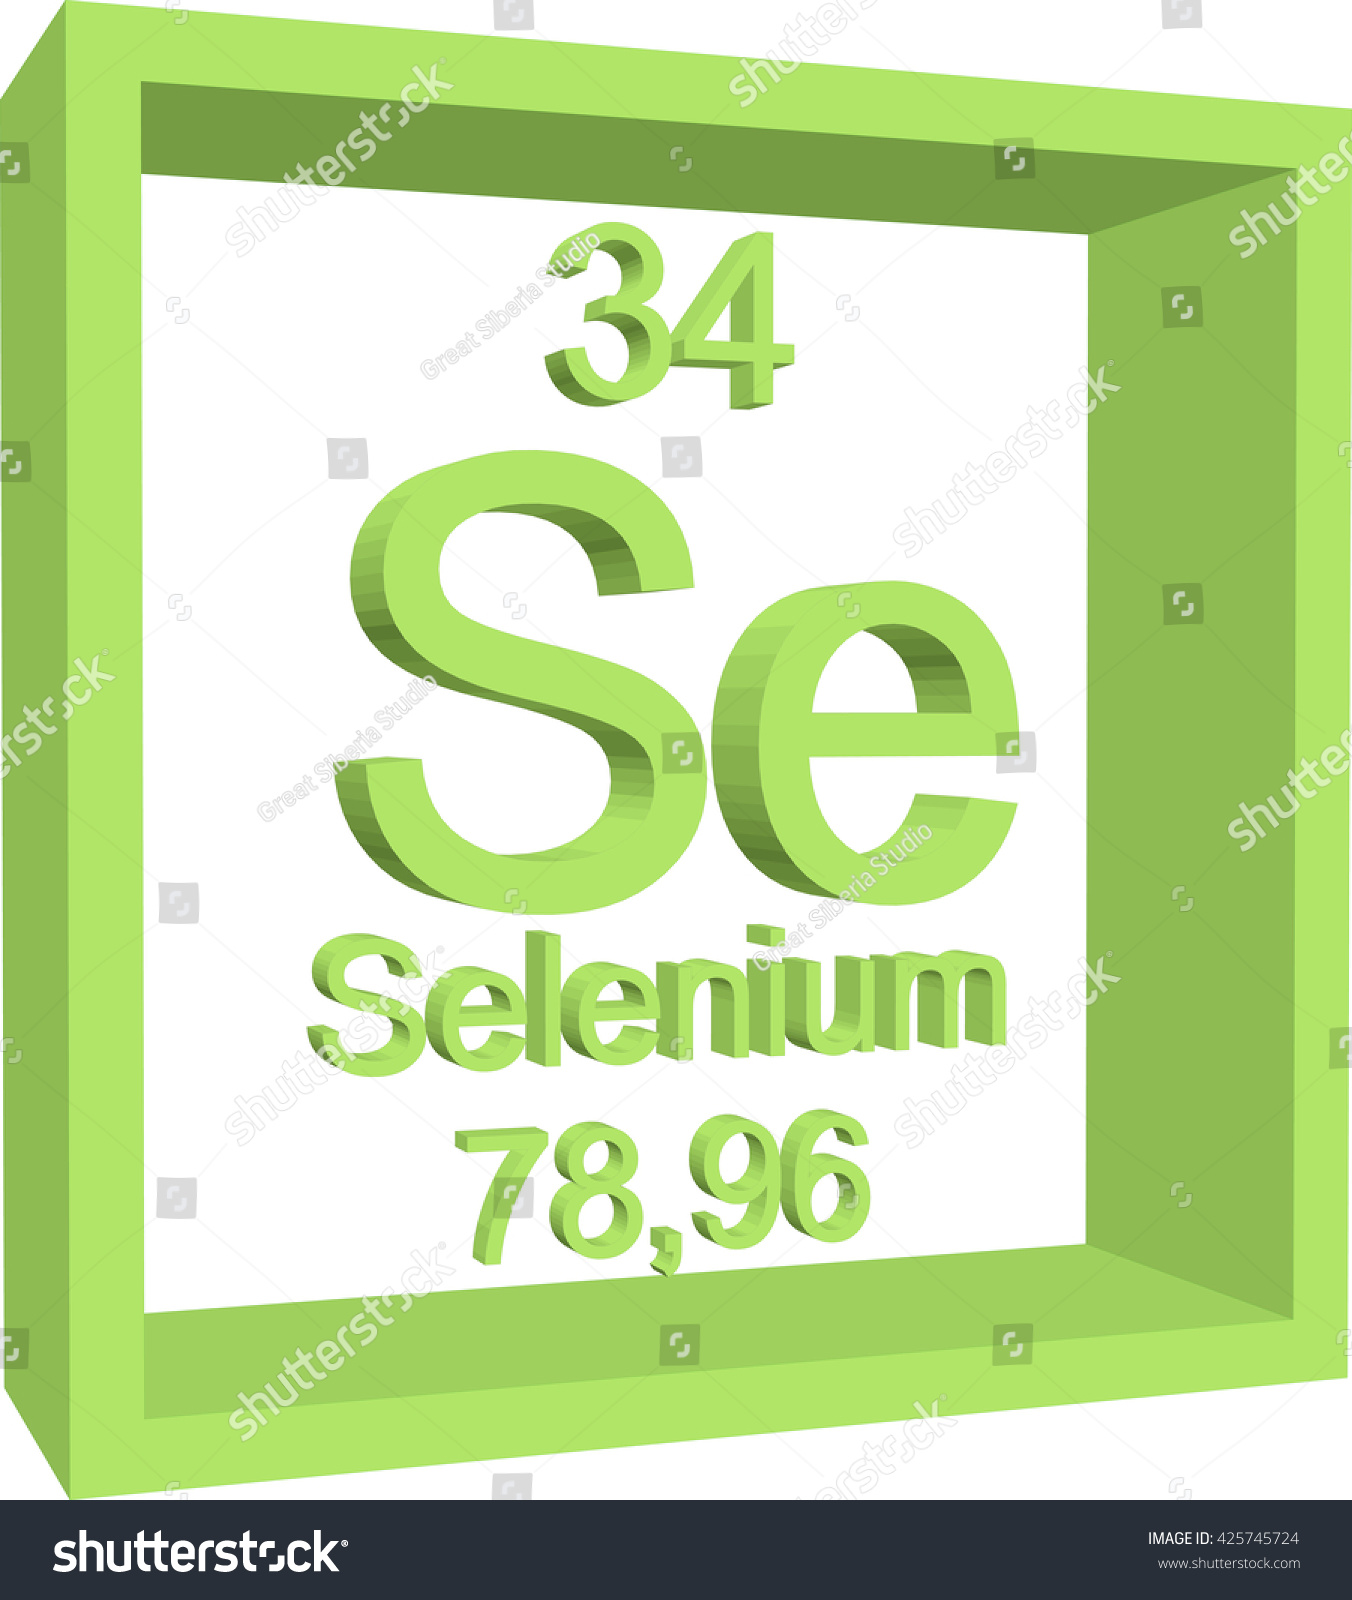 Periodic table elements selenium stock vector 425745724 shutterstock periodic table of elements selenium gamestrikefo Images